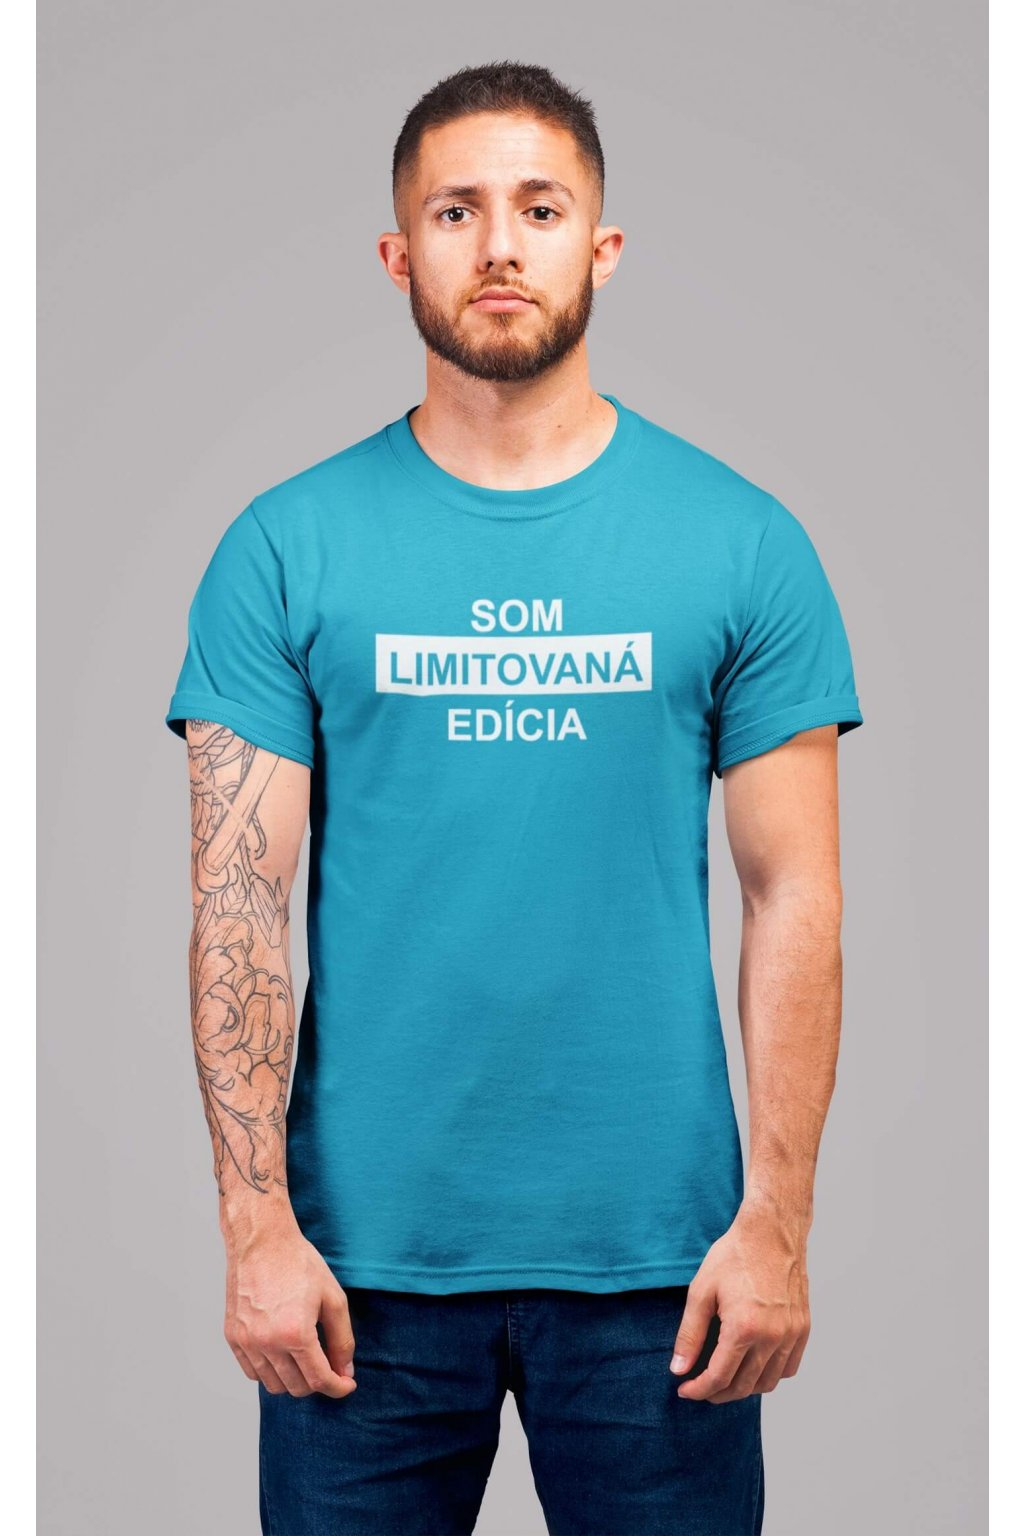 t shirt mockup of a redhead man with tattoos standing in a studio 22340 (4)